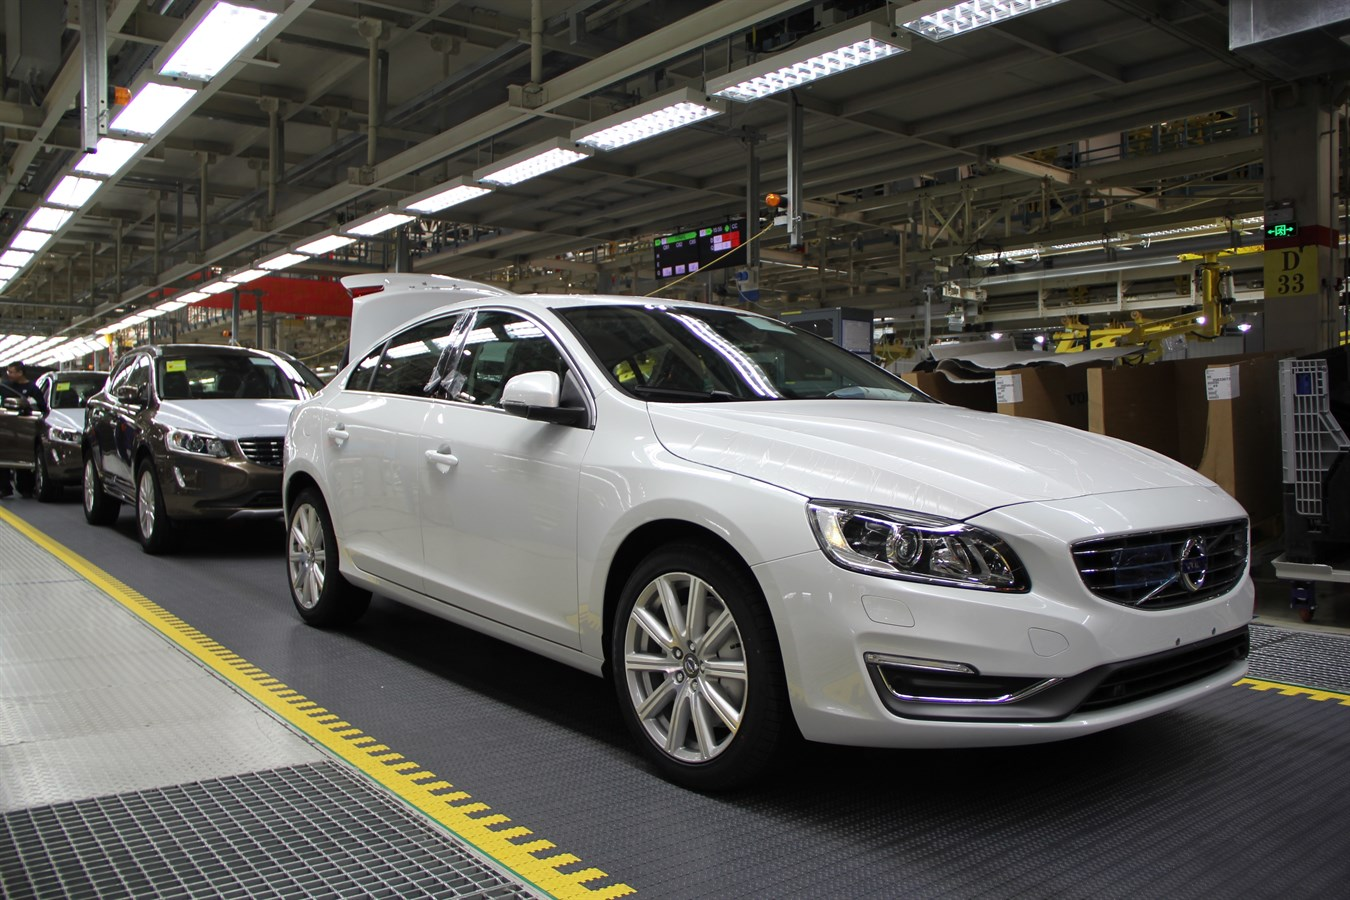 Manufacturer Factory Safety New Volvo Cars Manufacturing Plant In Chengdu Delivering